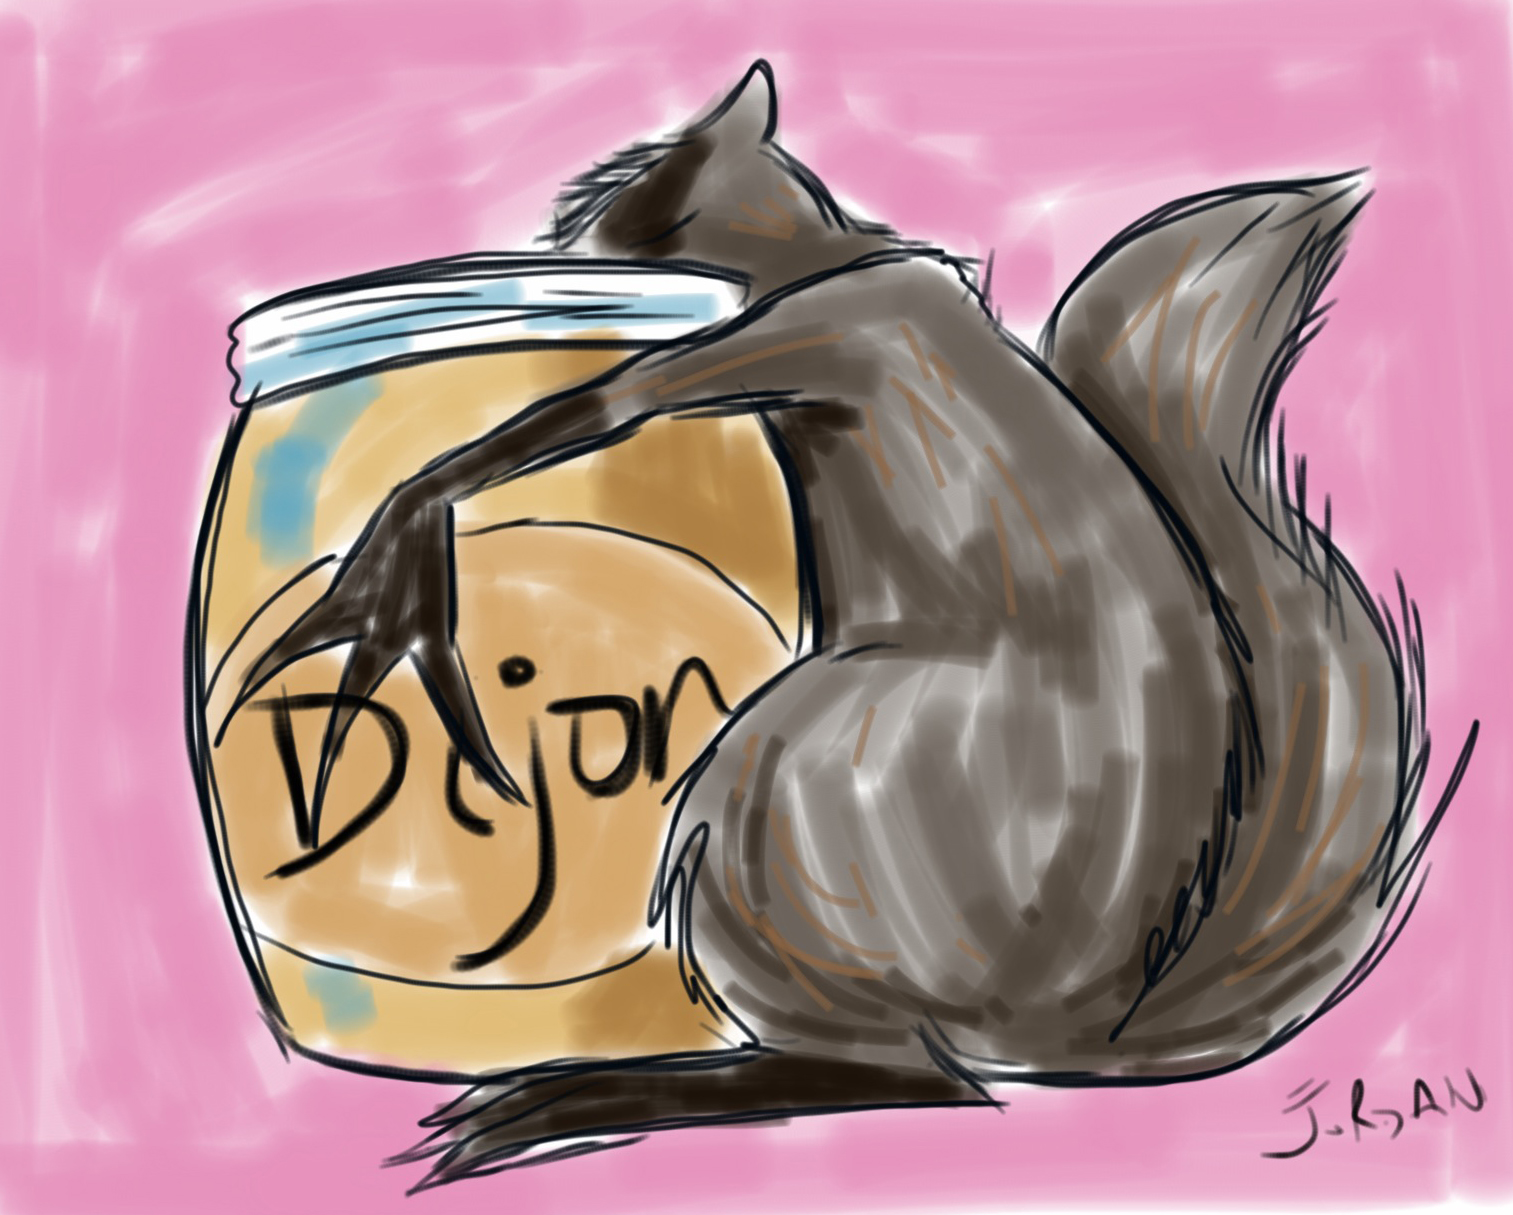 Drawing of badger eating dijon. GIRL, CRAFTED blog.